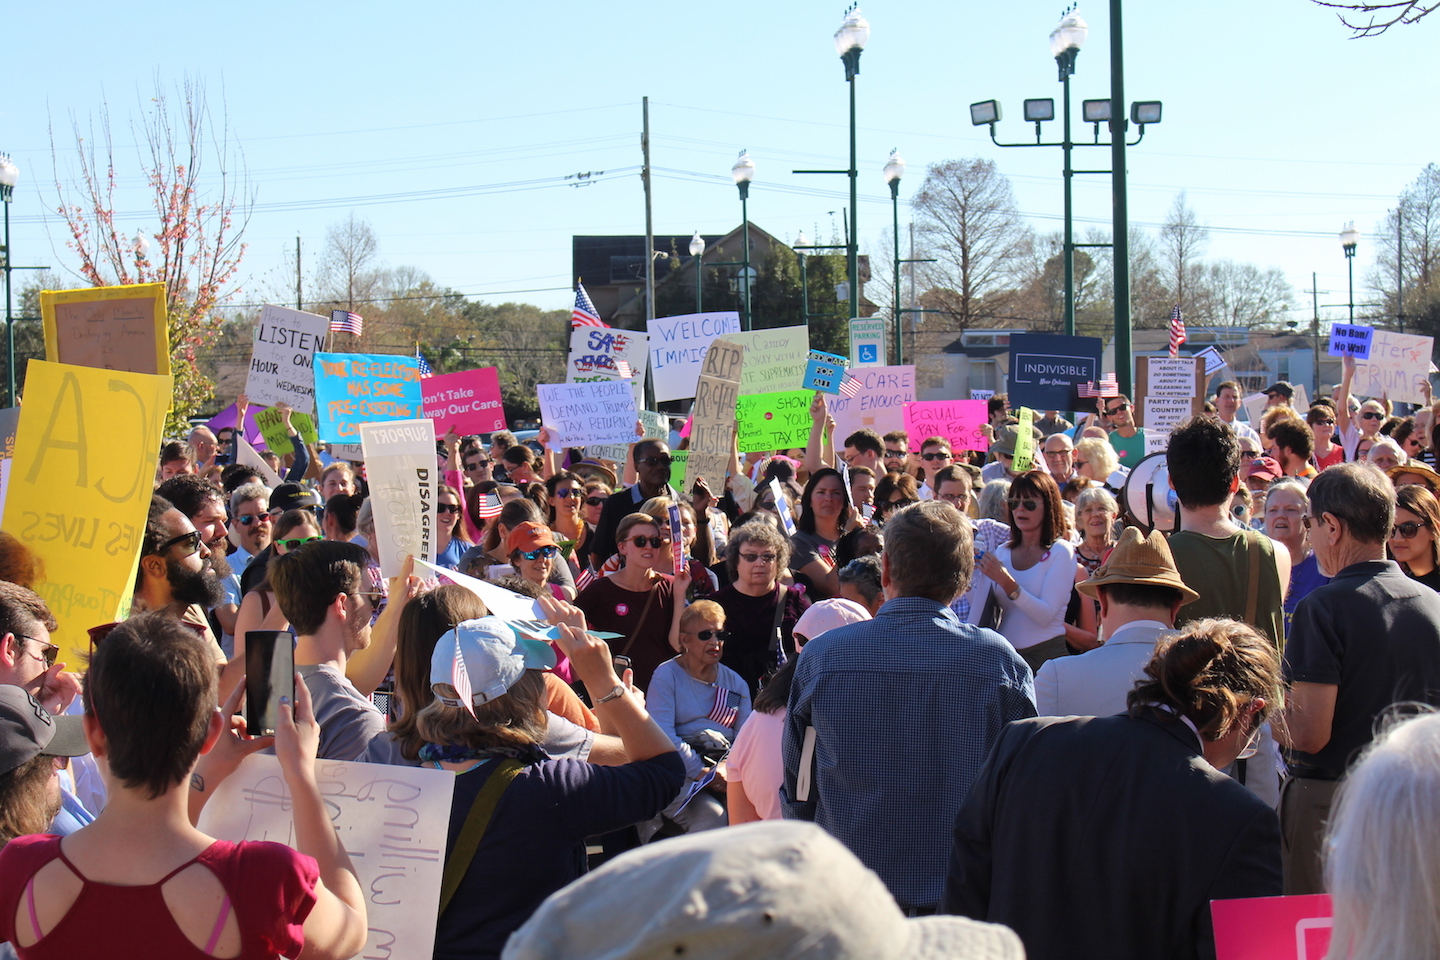 Protesters+chants+begin+to+get+louder+as+Sen.+Bill+Cassidy+showed+up+30+minutes+late+to+his+scheduled+town+hall.+Several+dozen+people+gathered+around+Jefferson+Parish+Library+in+protest+to+Sen.+Bill+Cassidy%27s+town+hall+on+Feb.+23%2C+2017.+